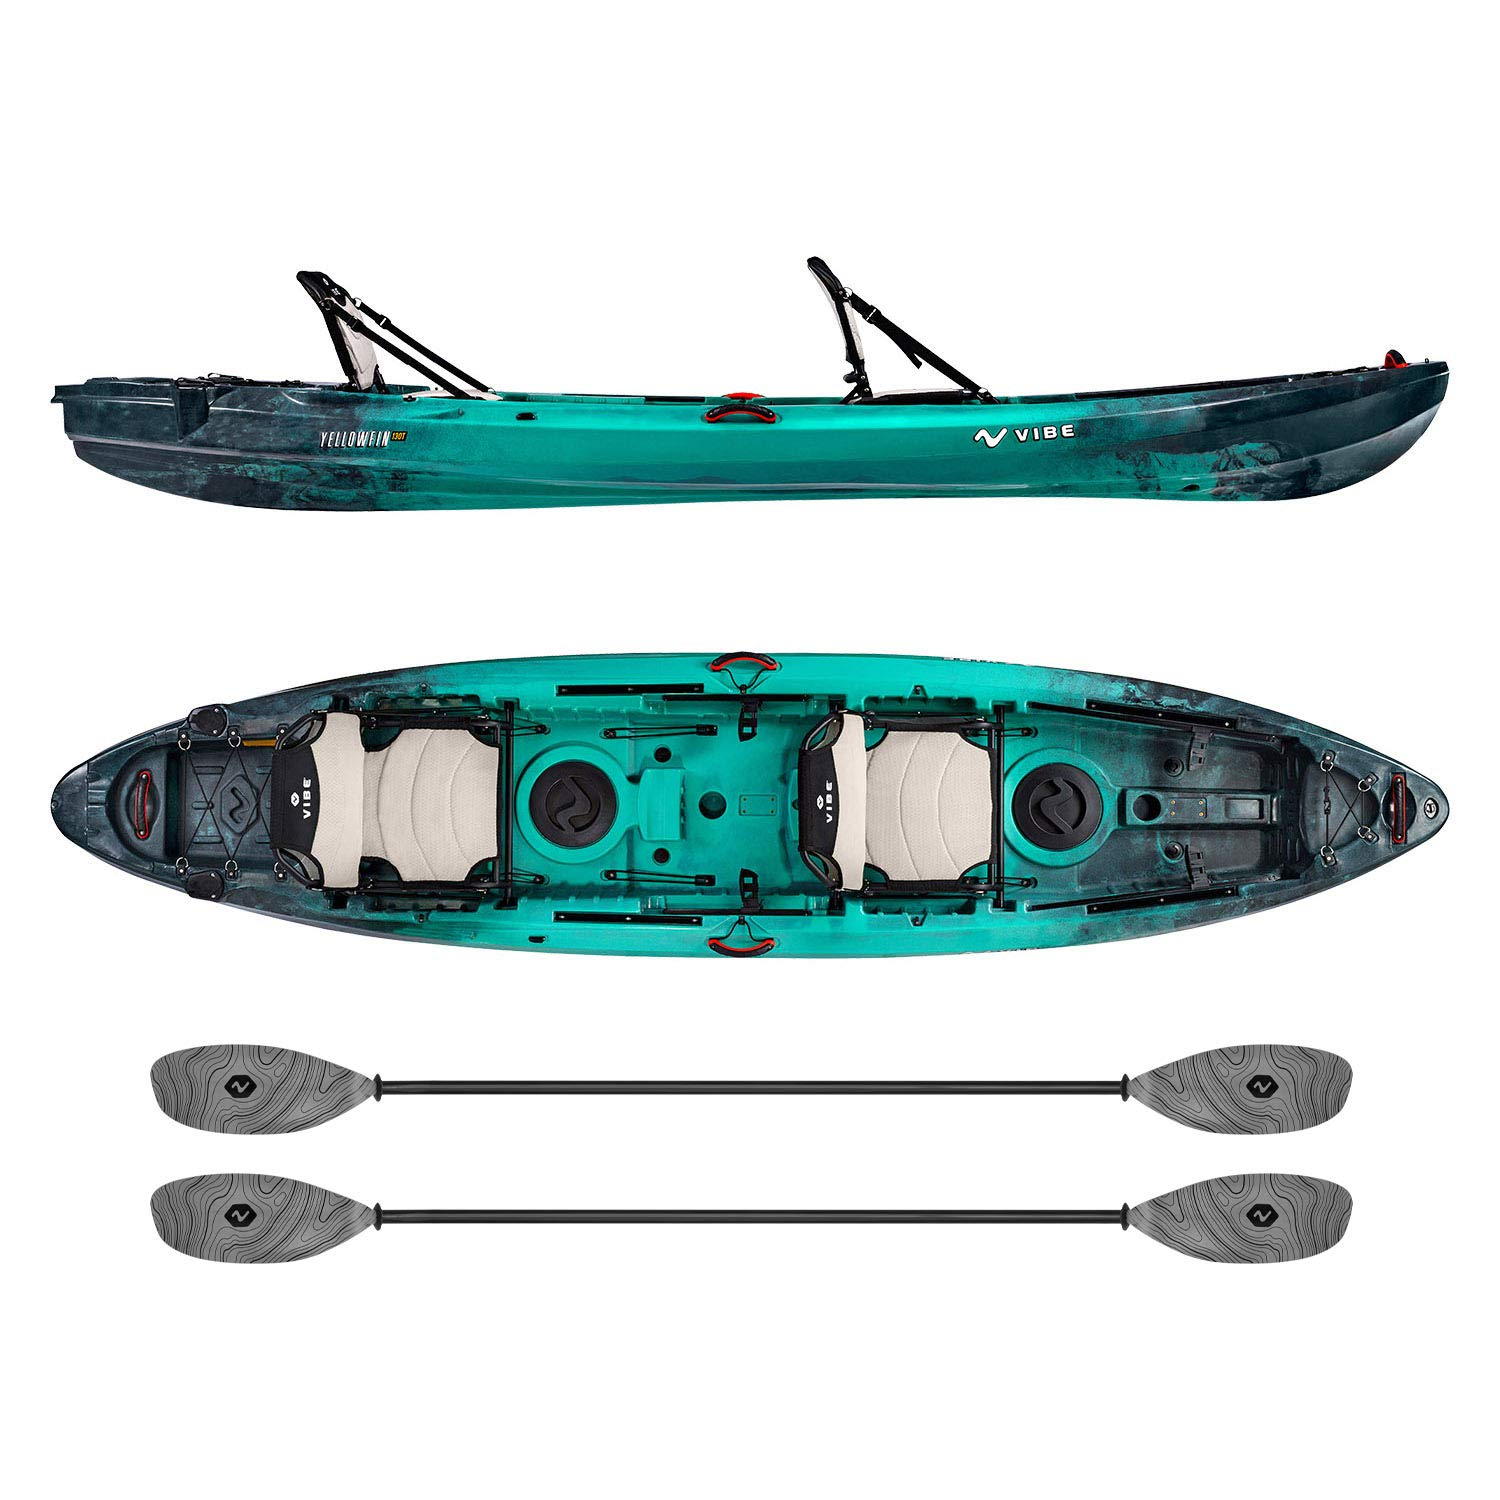 Vibe Kayaks Yellowfin 130T | 13 Foot | Tandem Angler and Recreational Two Person Sit On Top Fishing Kayak with 2 Paddles and 2 Hero Comfort Seats (Caribbean Blue - Smoke Gray Evolve Paddle)